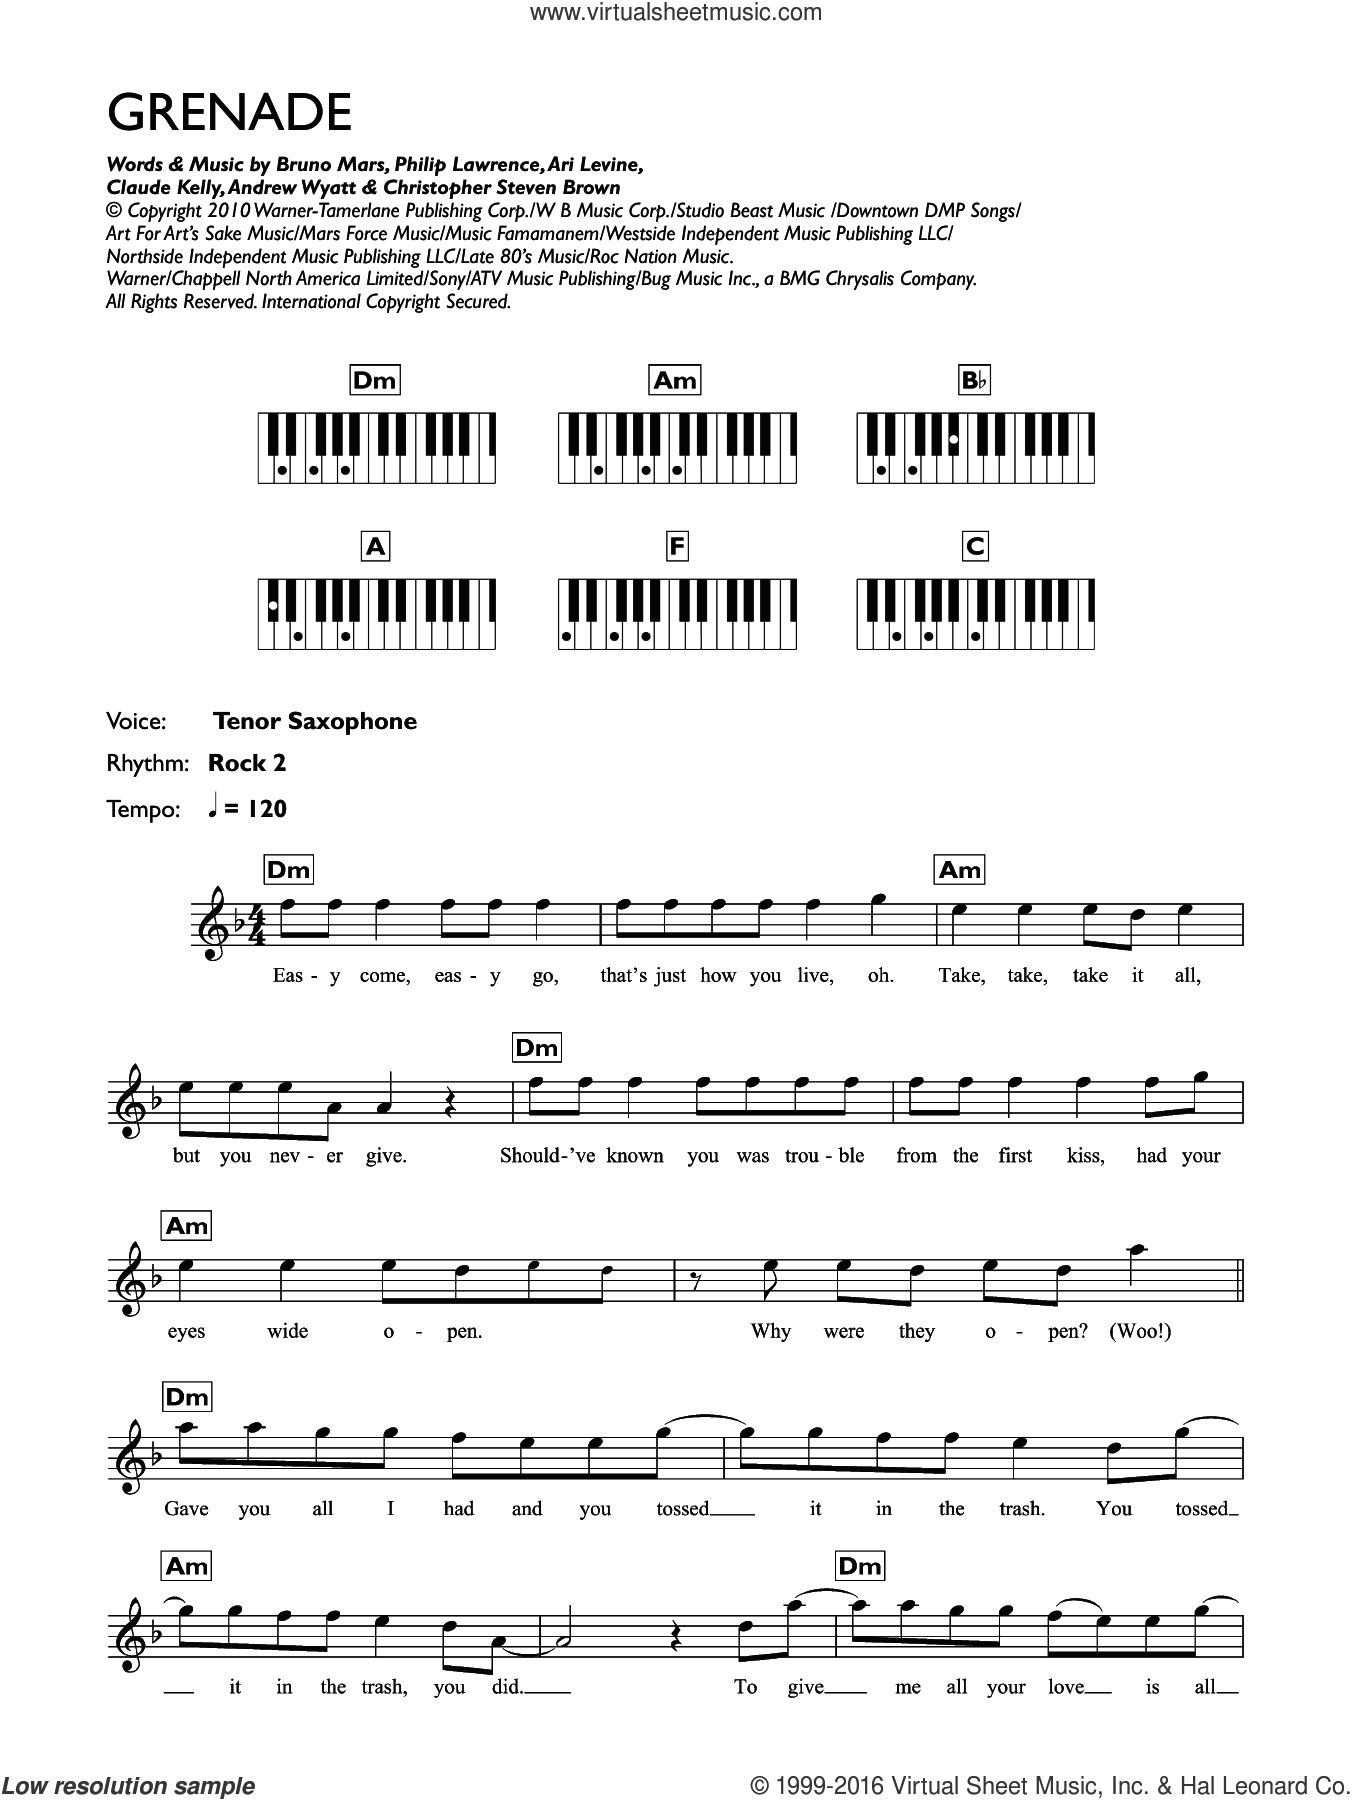 Grenade sheet music for piano solo (chords, lyrics, melody) by Philip Lawrence, Andrew Wyatt, Ari Levine, Bruno Mars and Claude Kelly. Score Image Preview.